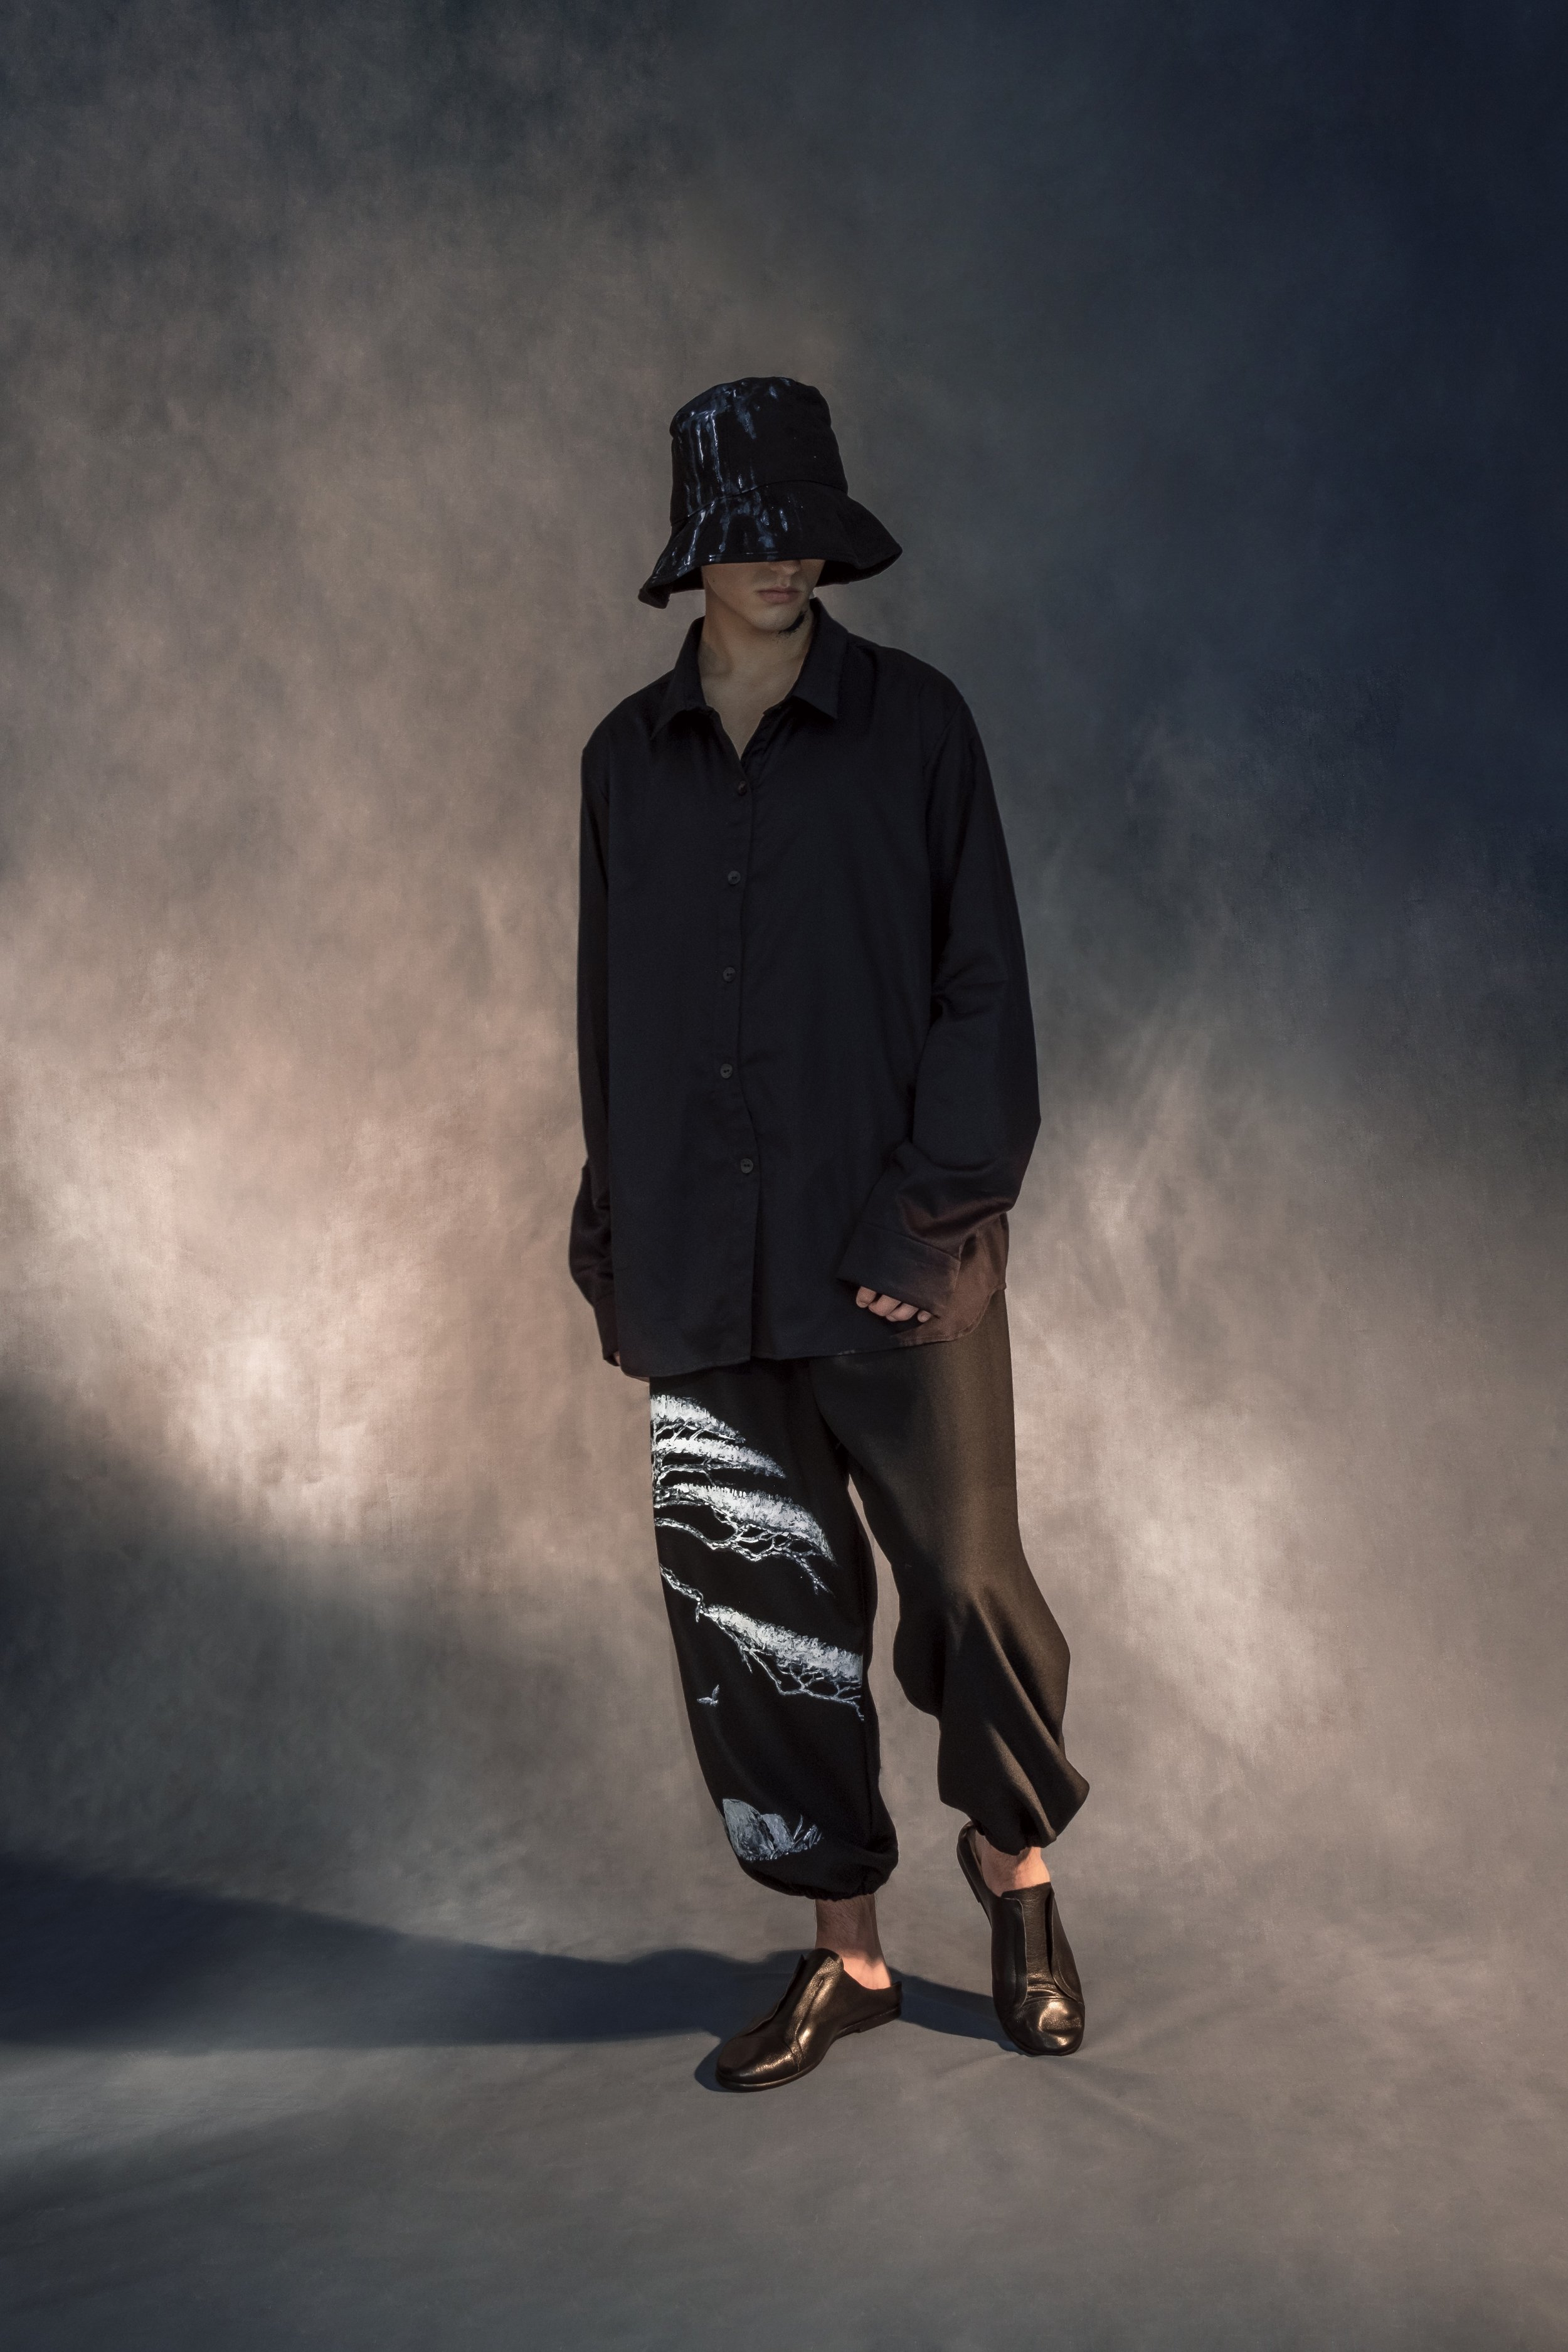 Romantic Chinese landscapes make a statement about Yuexue Wang's cultural identity in her collection, Mo.